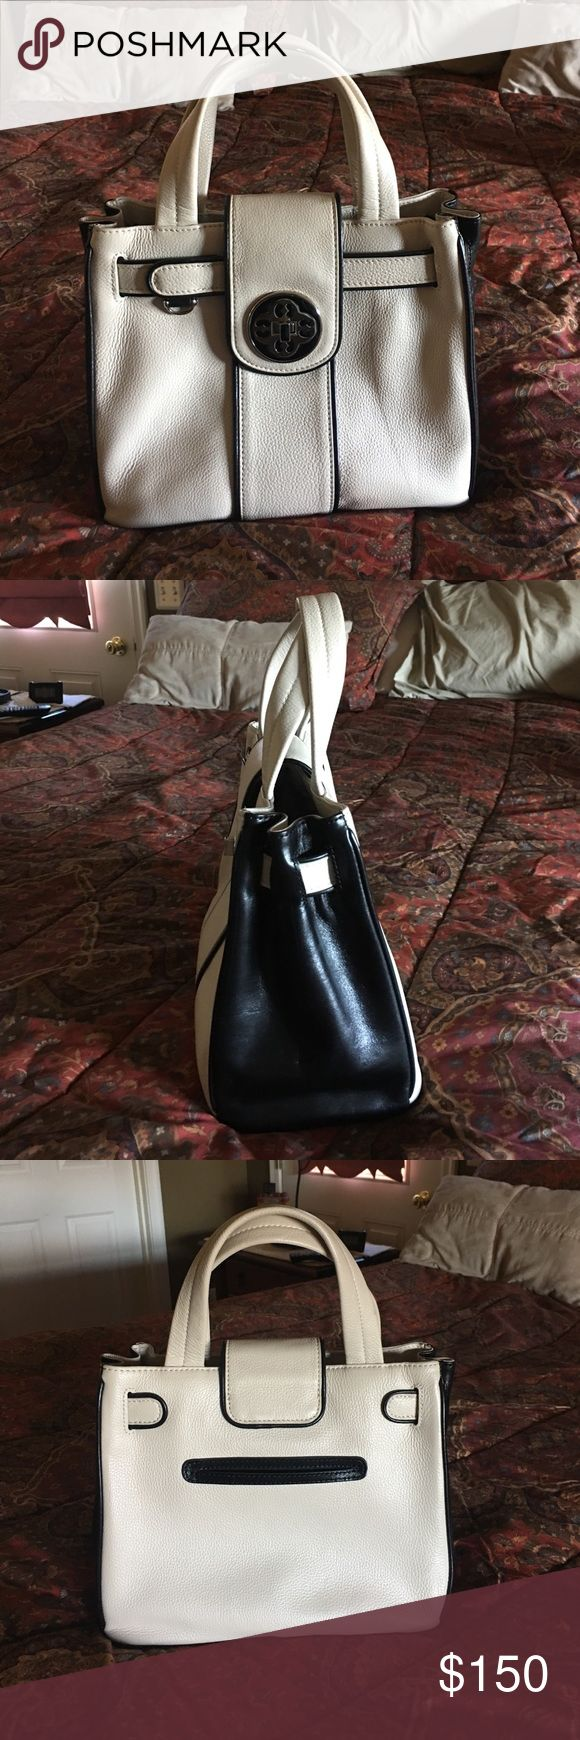 My One Flat In London Bag (aka Brighton) Soft cream leather with chocolate brown trim Handbag. In EXCELLENT condition. Authentic. Measures 10 1/2 inches wide by 9 inches high. Classic style My Flat in London bag ( buy in Brighton stores). All leather. My Flat In London Bags Mini Bags